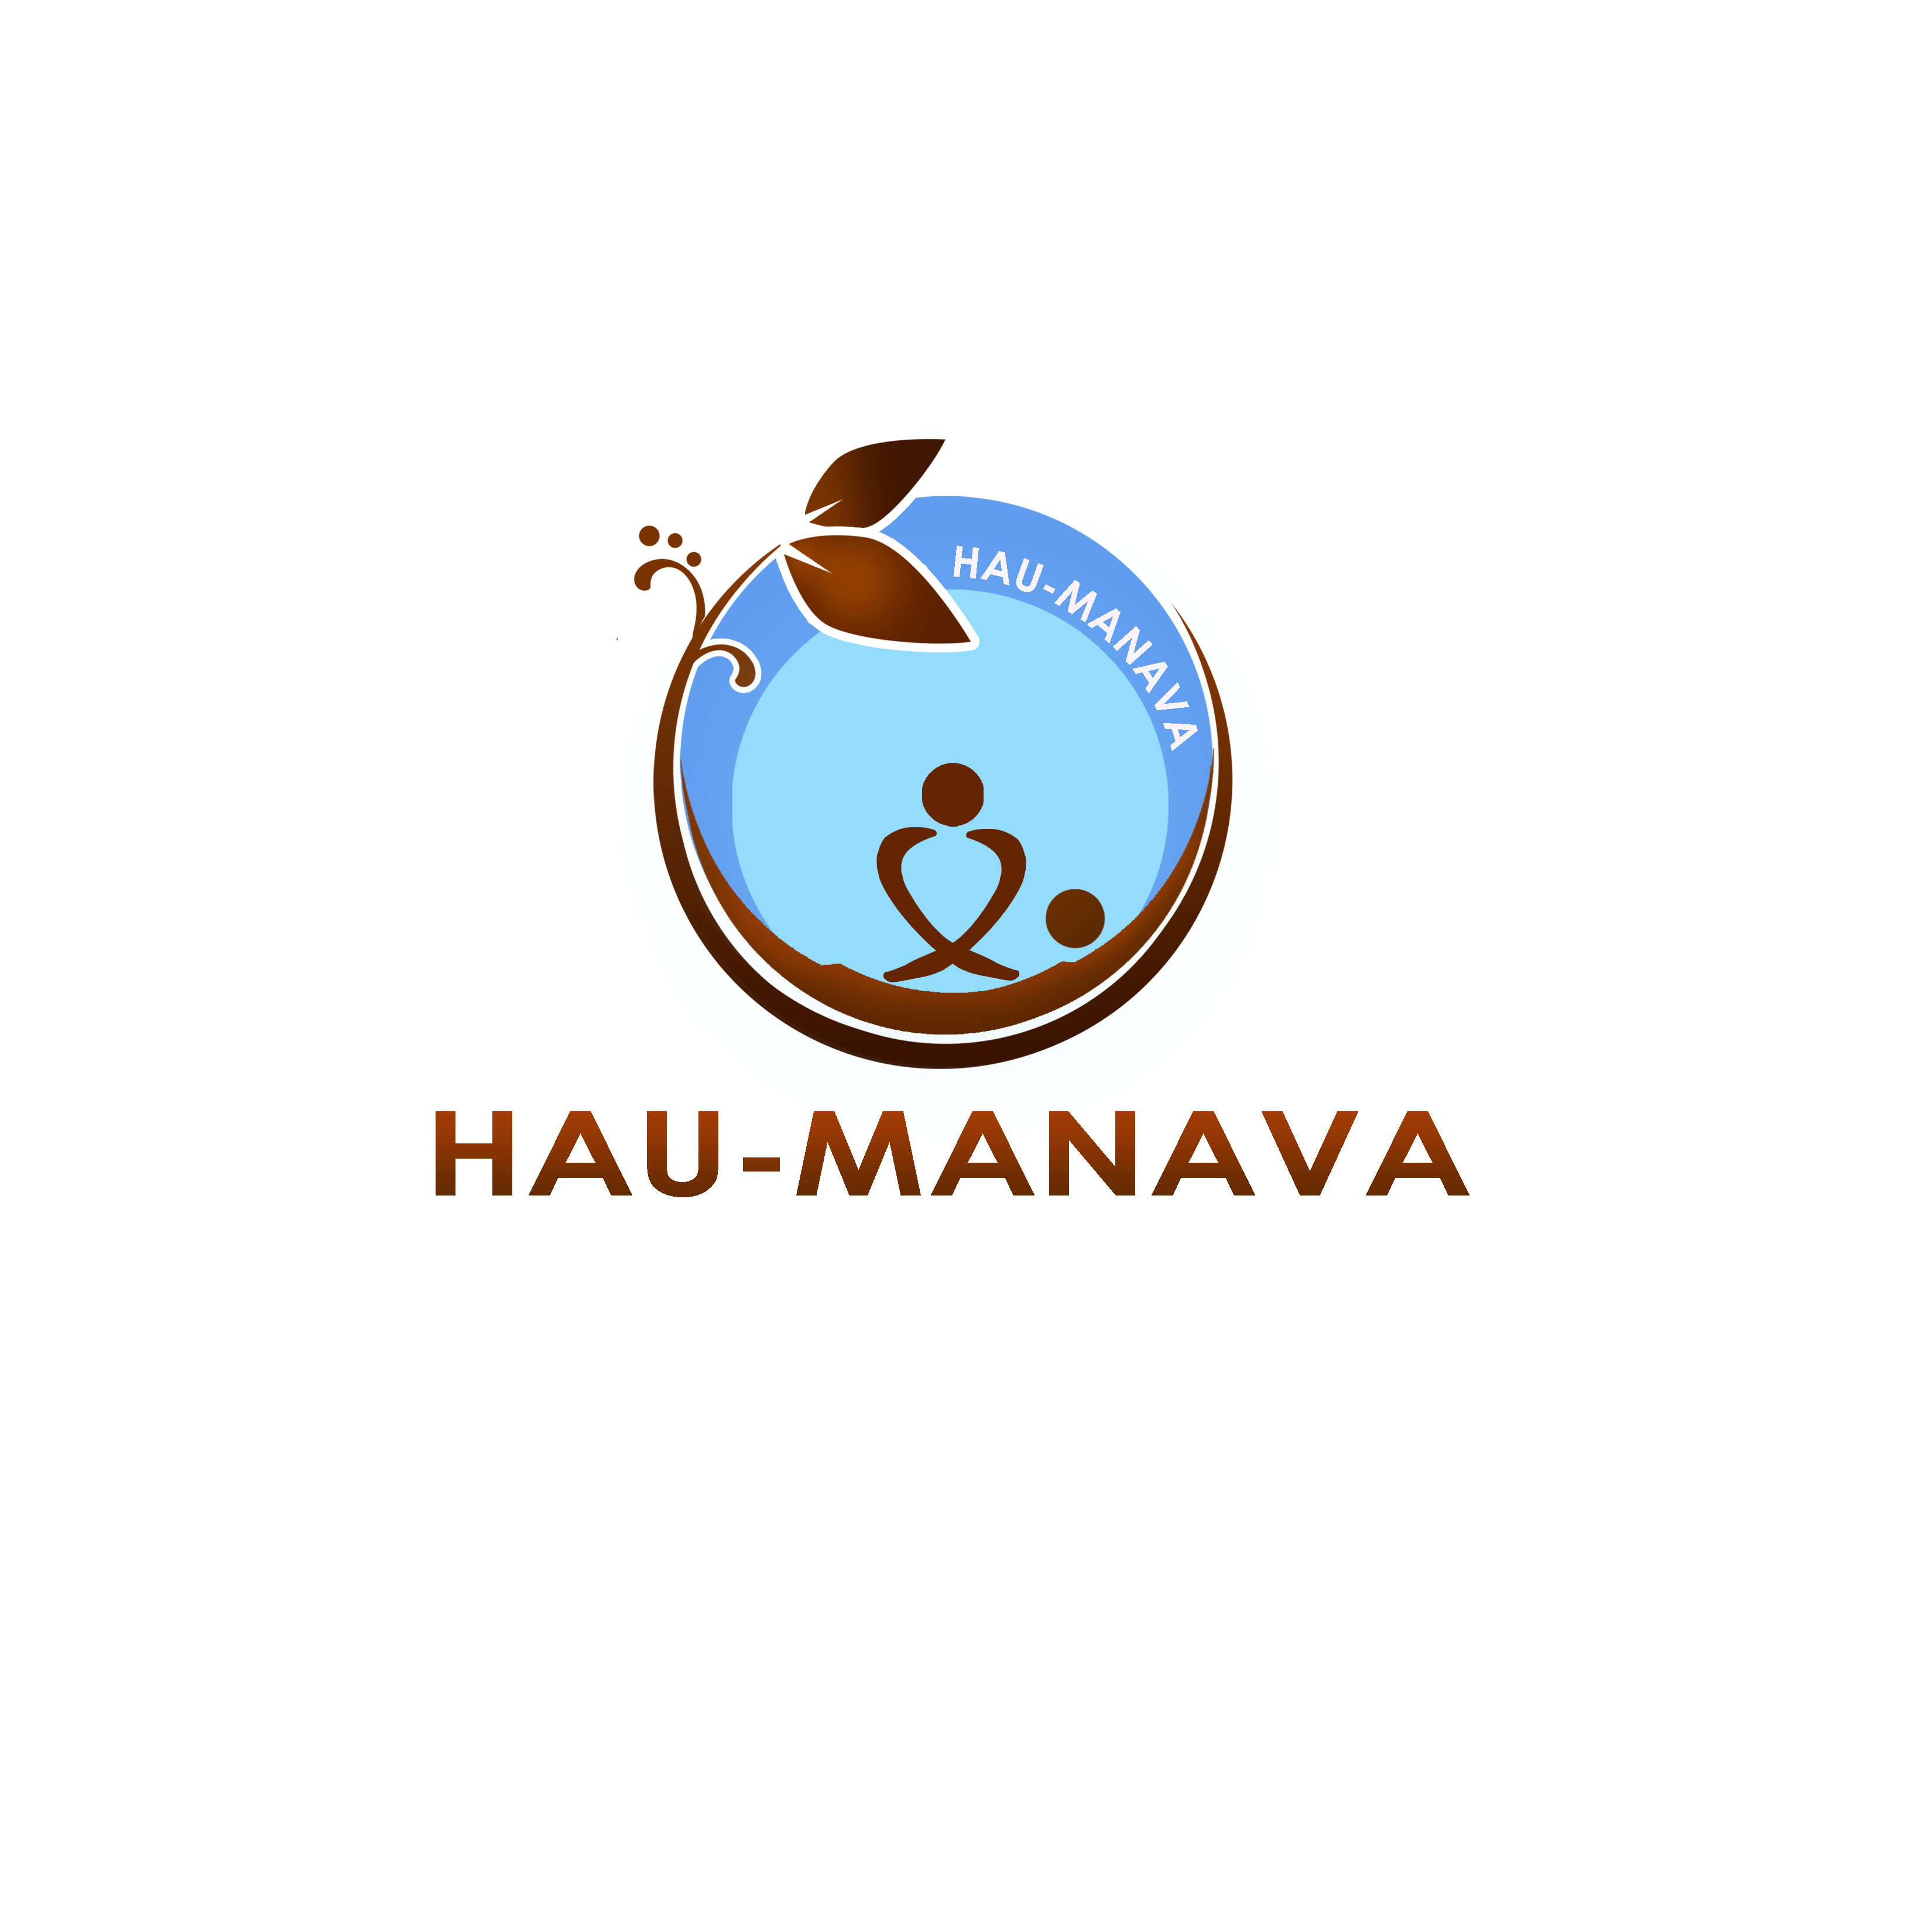 Logo Design by Allan Esclamado - Entry No. 5 in the Logo Design Contest Hau-Manava Logo Design.